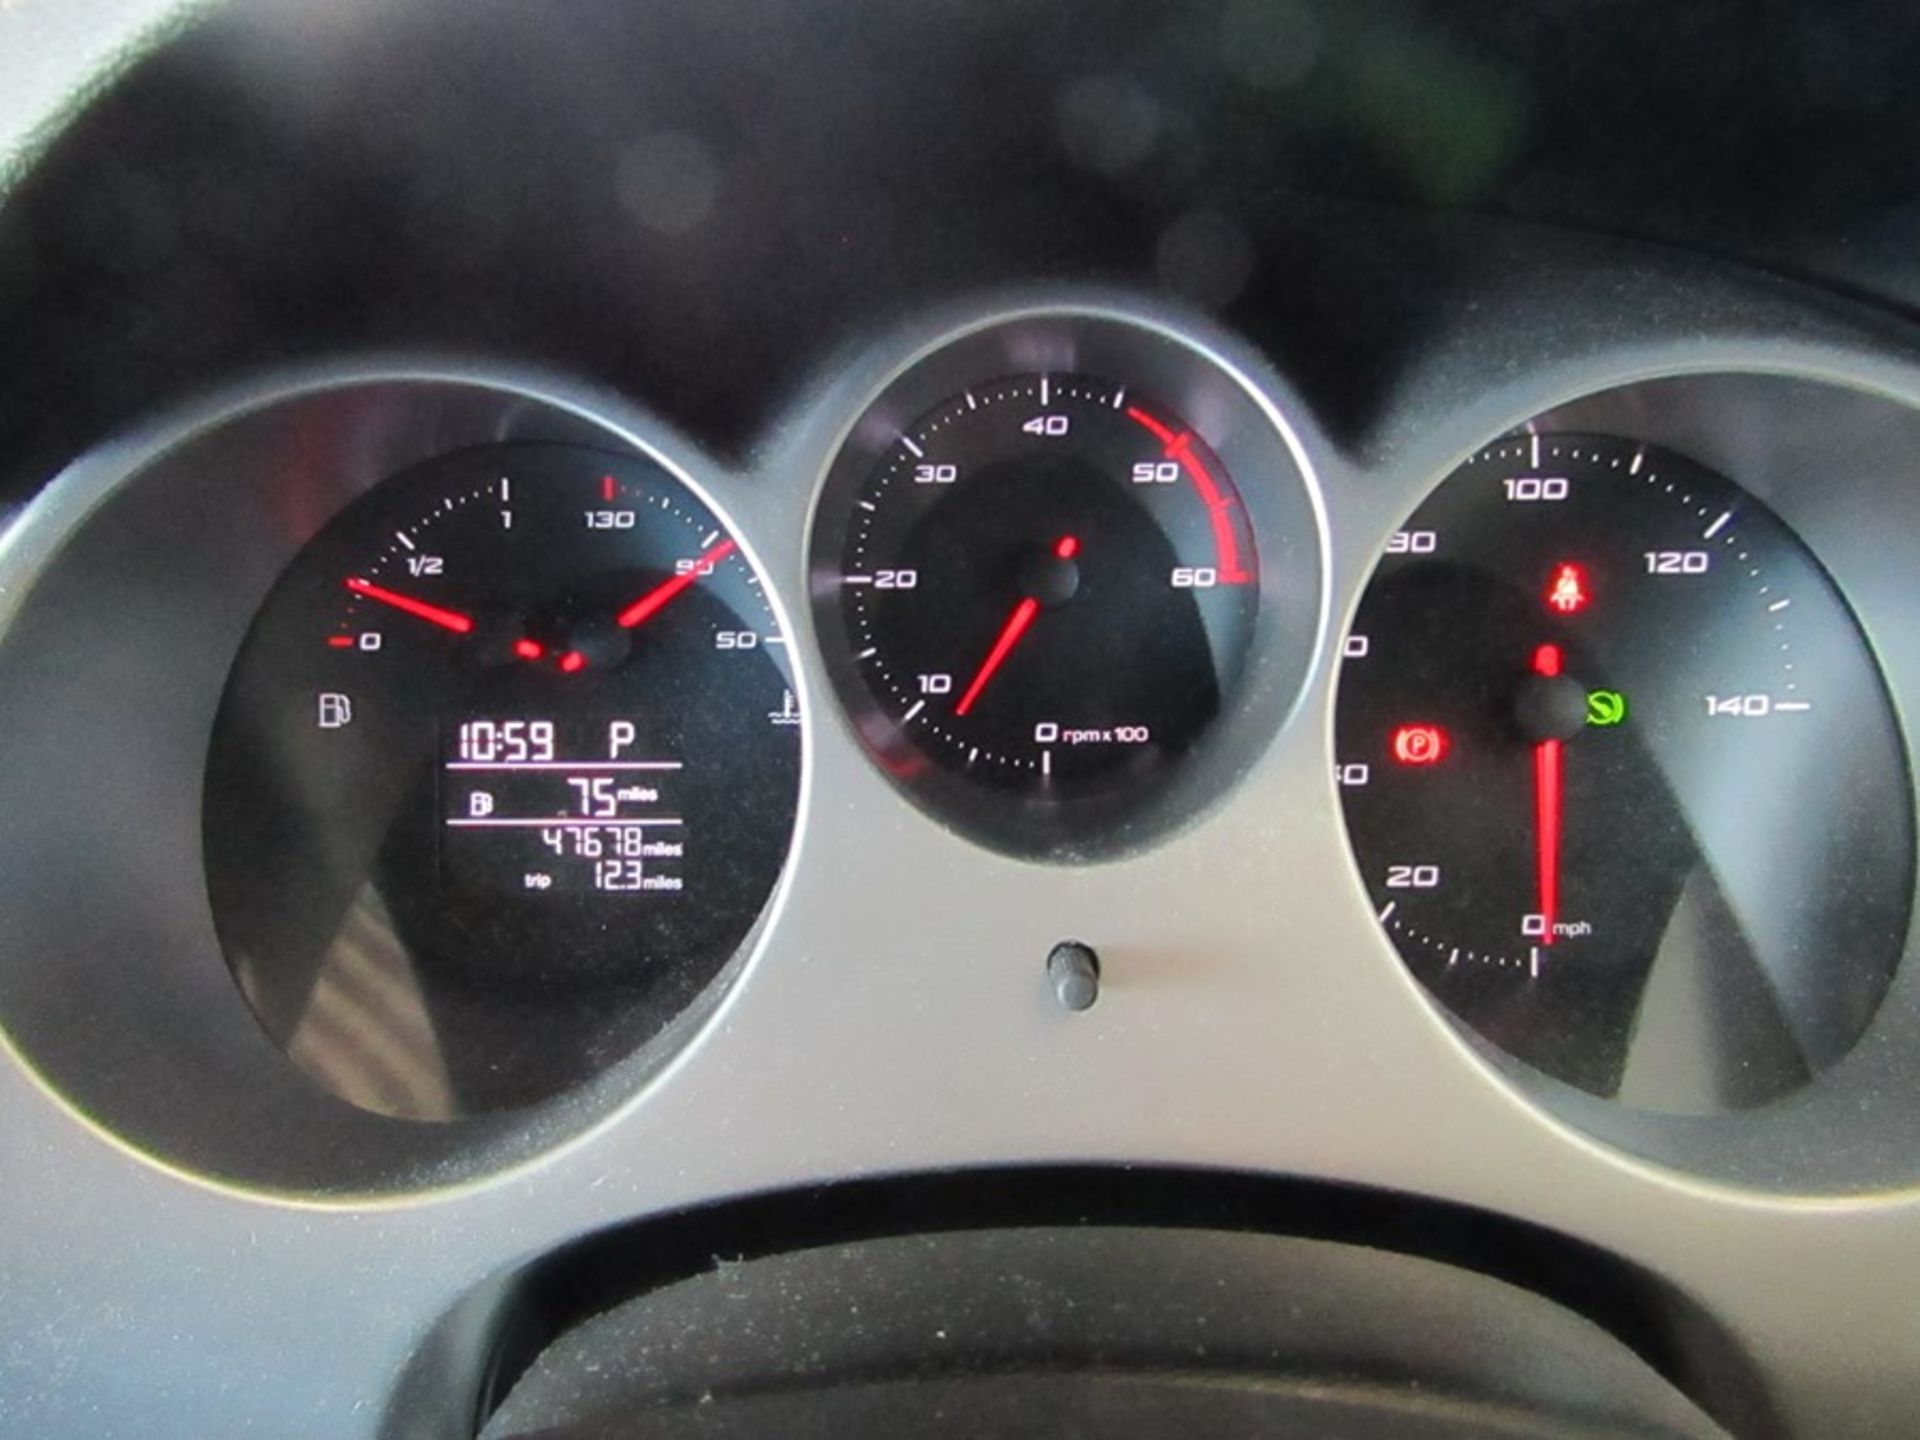 2011 Seat Althea SE CR TDI Auto, 1.6TDI, 47,678 miles (unchecked but appears to be inline with the - Image 12 of 17